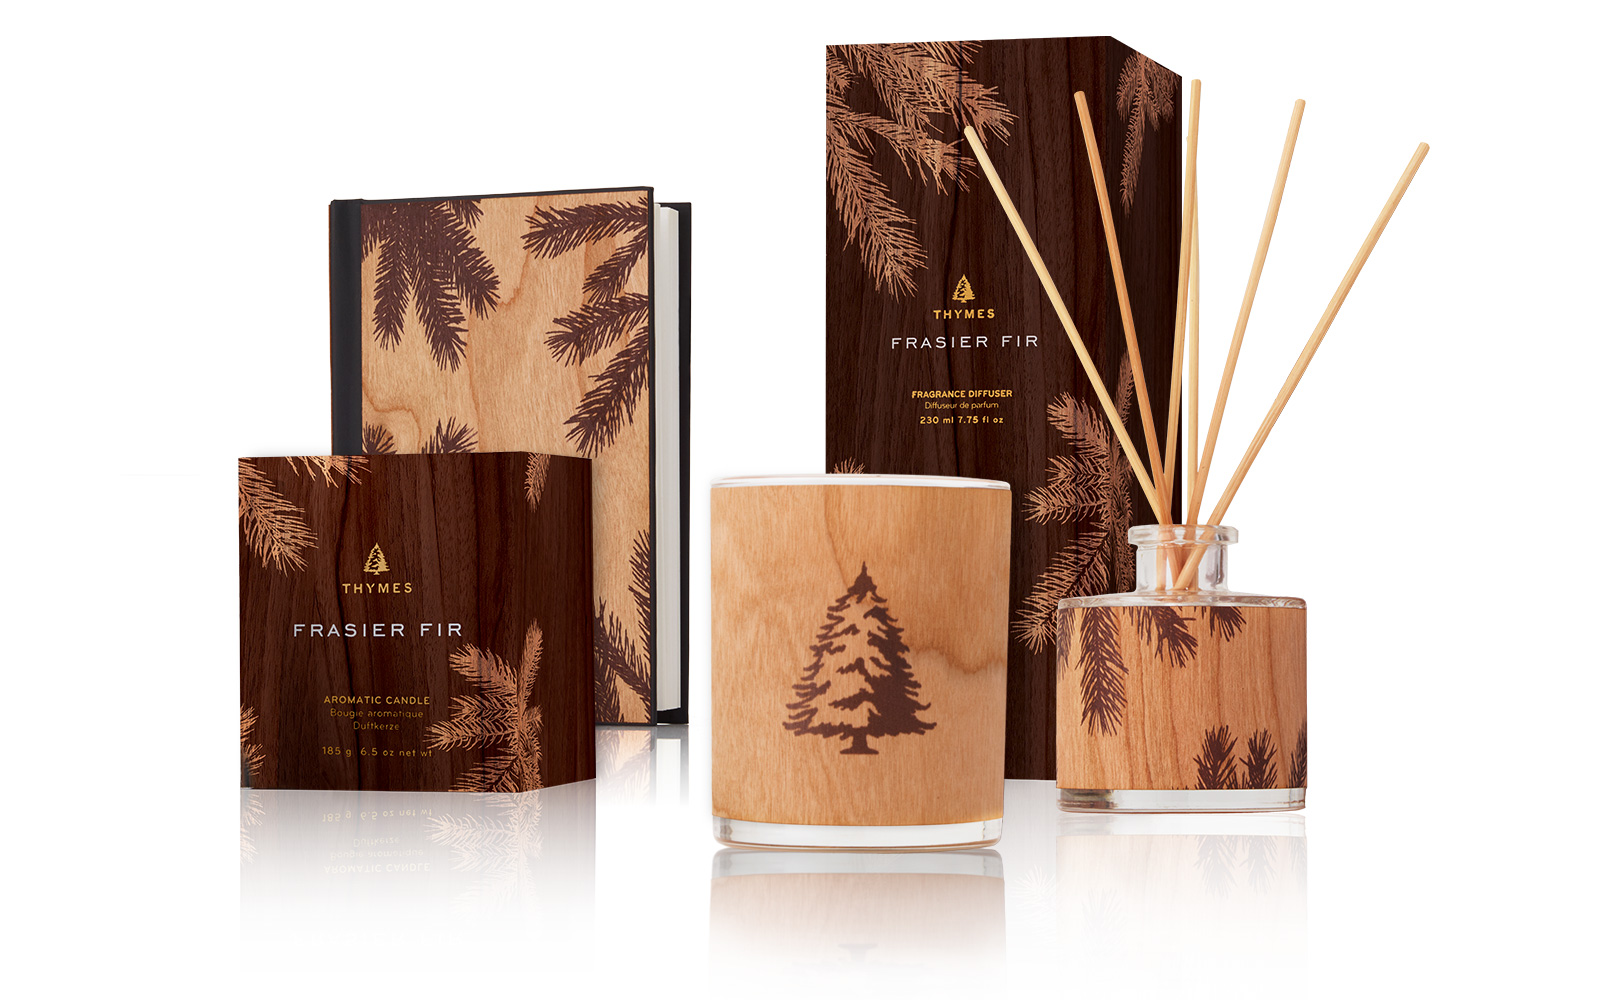 Limited Edition Collections of Luxury Home Fragrances